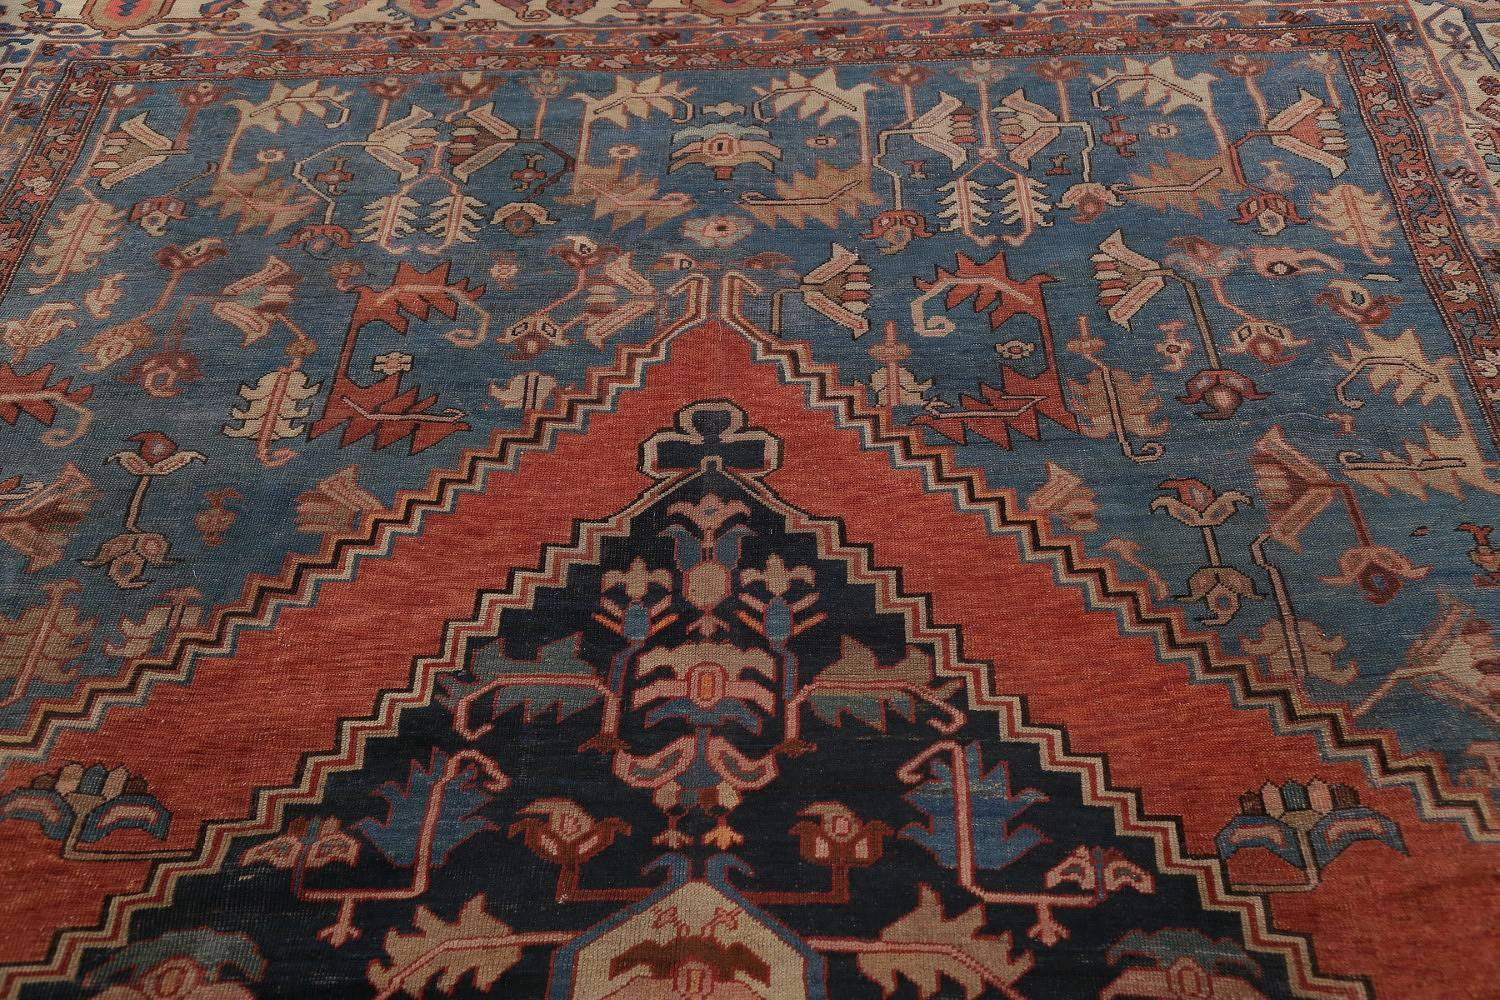 Pre-1900 Antique Geometric Blue Heriz Serapi Bakhshayesh Persian Area Rug 11x15